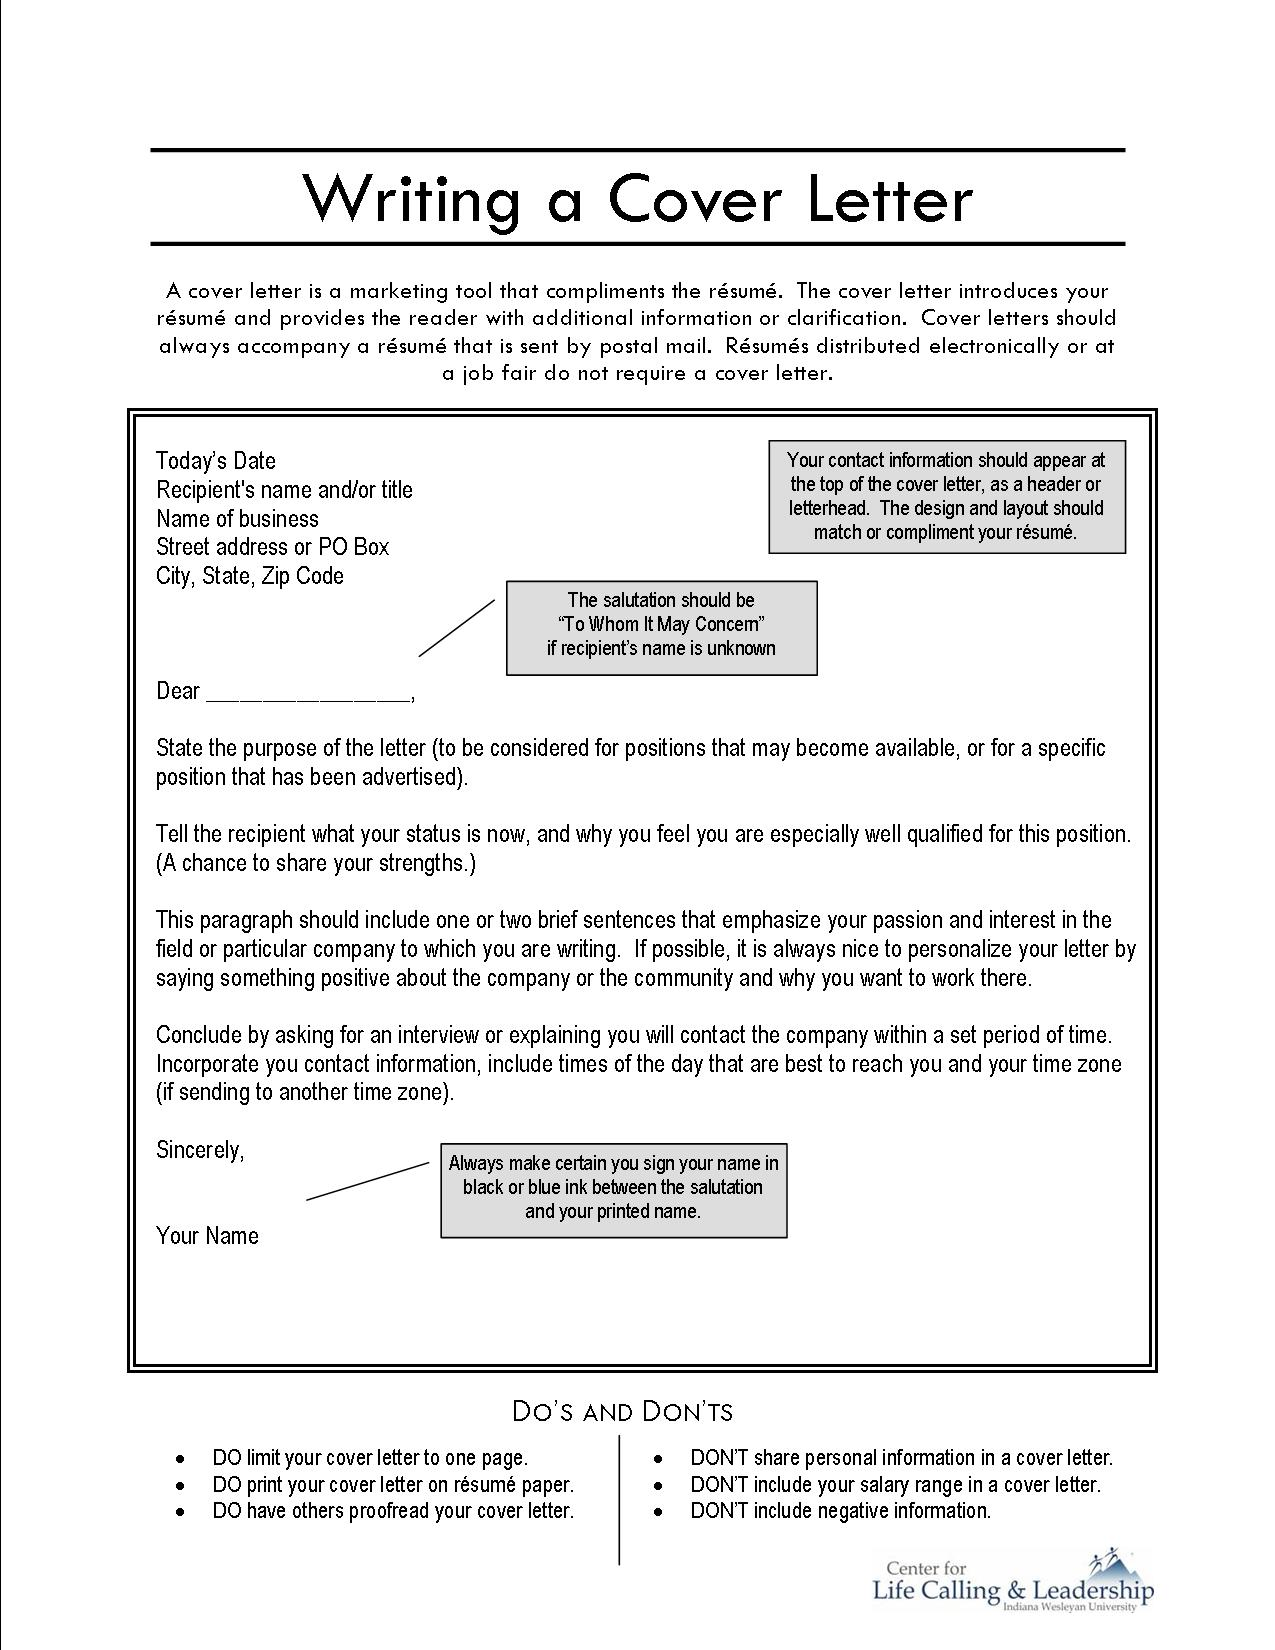 writing a covering letter: